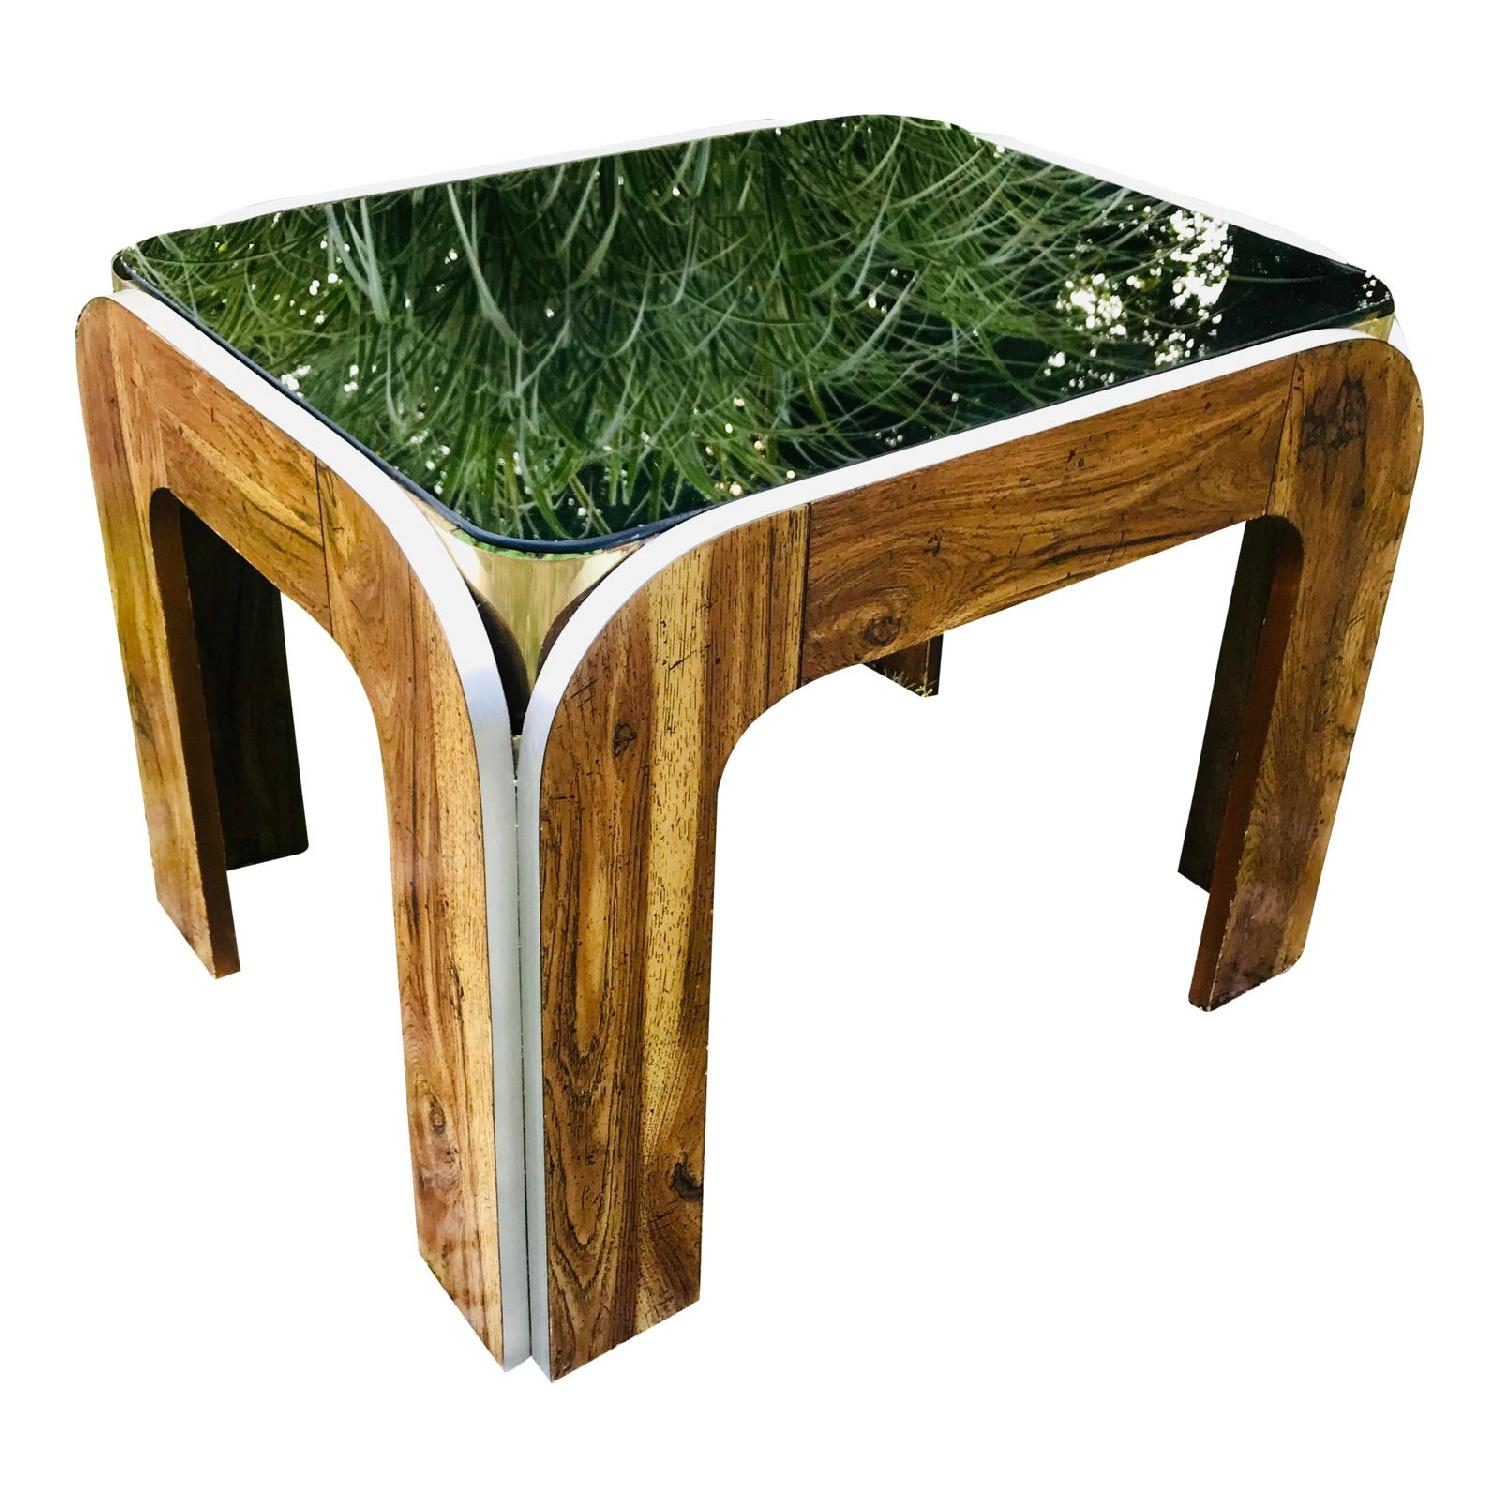 Vinitage Deco Style Coffee Table w/ Smoked Glass Top - image-0